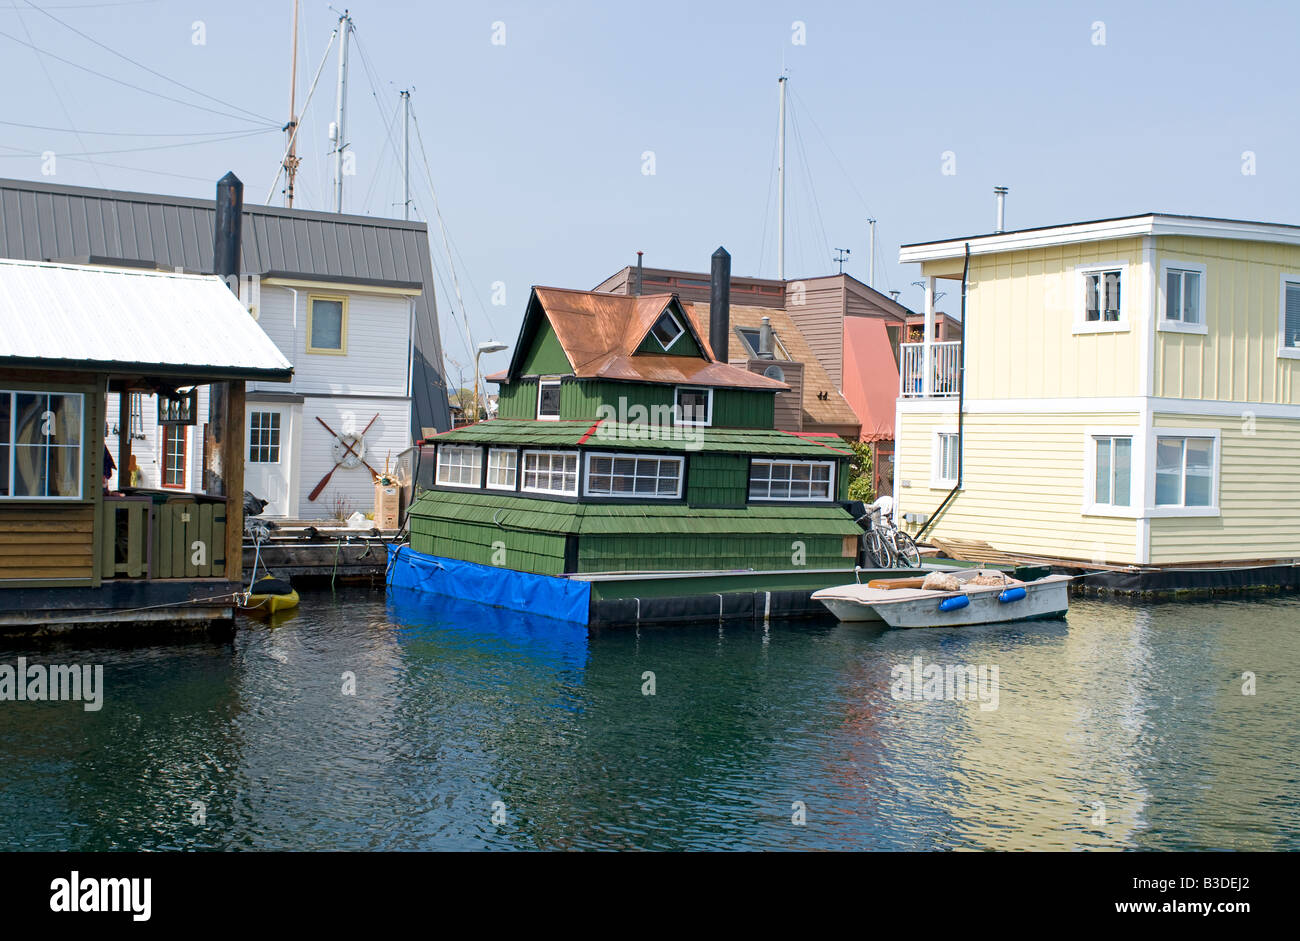 Victoria house boat float homes British Columbia  BCY 0688 - Stock Image